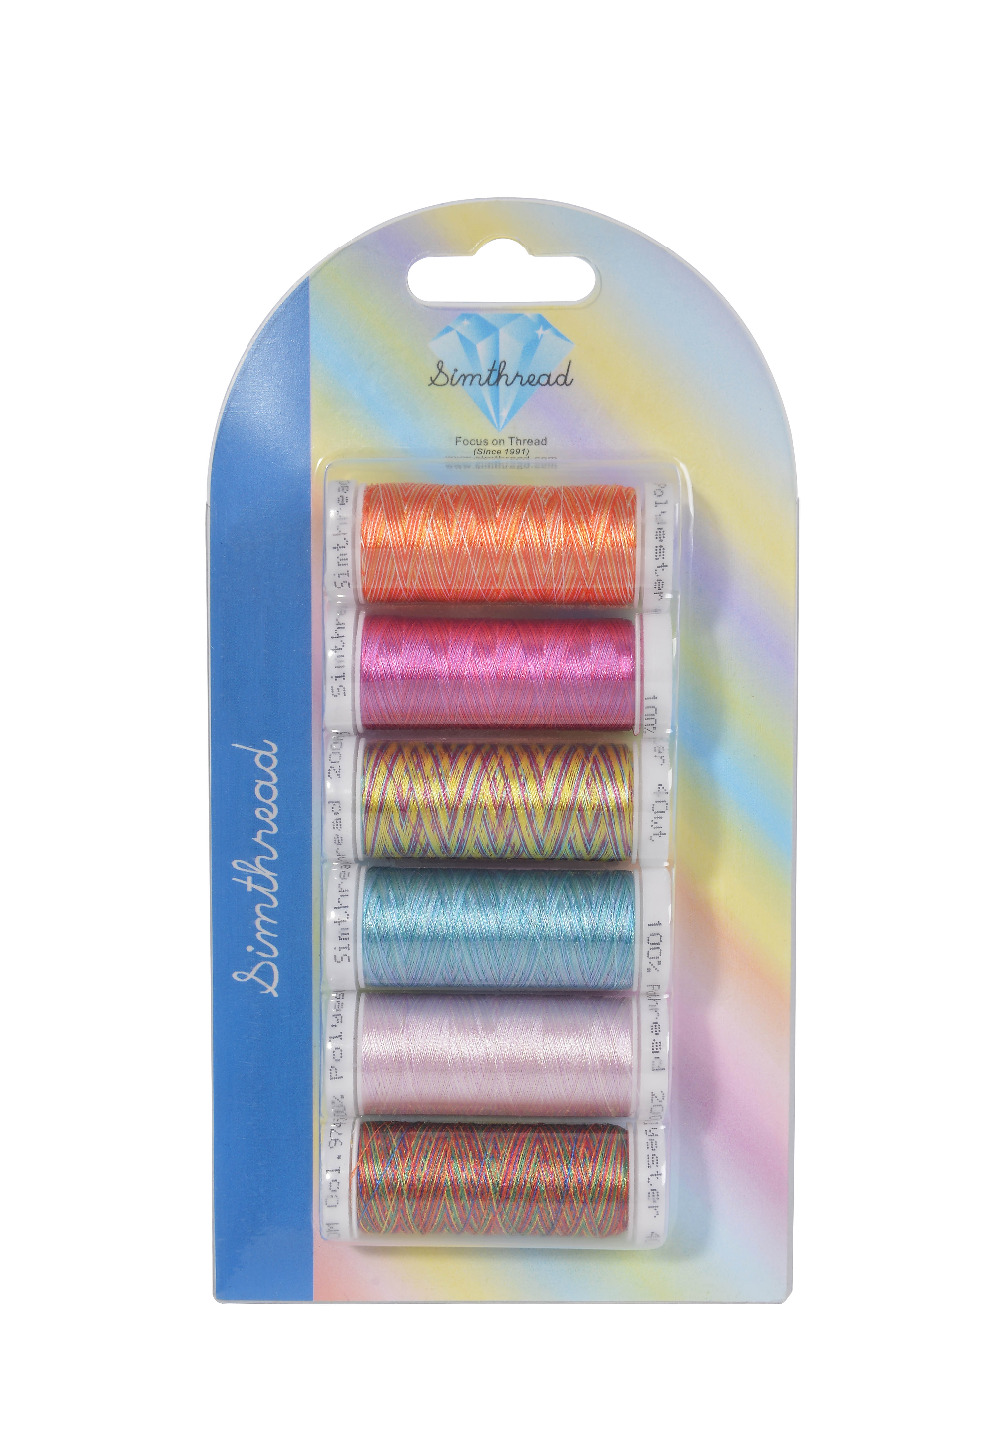 SIMTHREAD Multi-colored Polyester Embroidery Thread, 300M/bobbin, 6pcs/kit - For Brother, Babylock, Janome, Singer EMB Machines